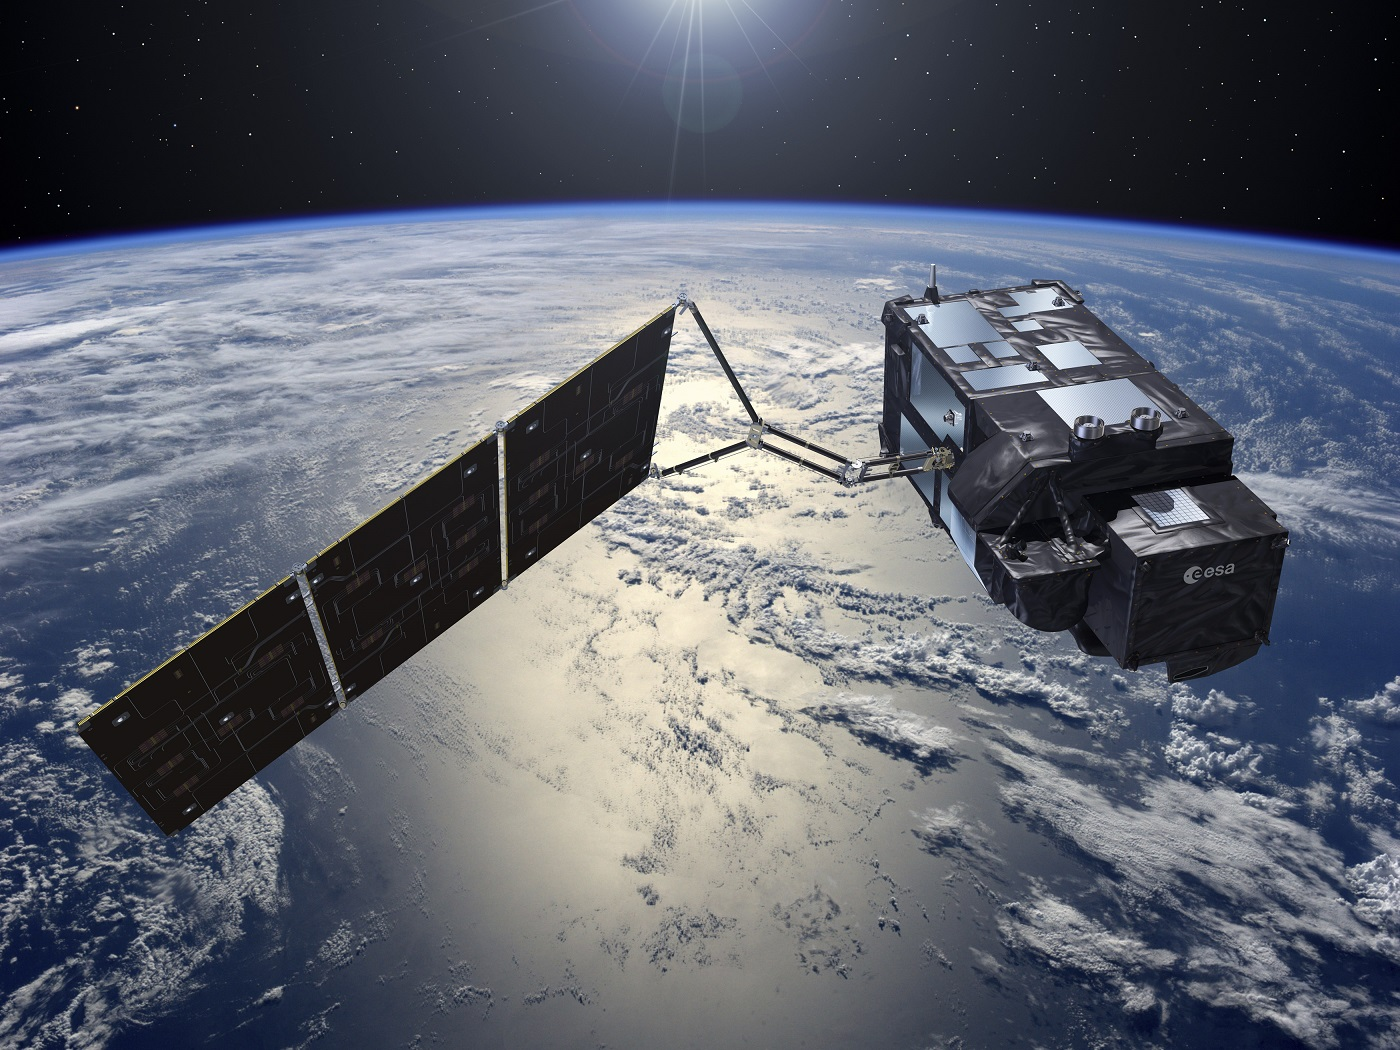 Artist's view of the Sentinel 3A over the earth. The Sentinel 3A includes IberEspacio Heat Pipes and Thermal Blankets.